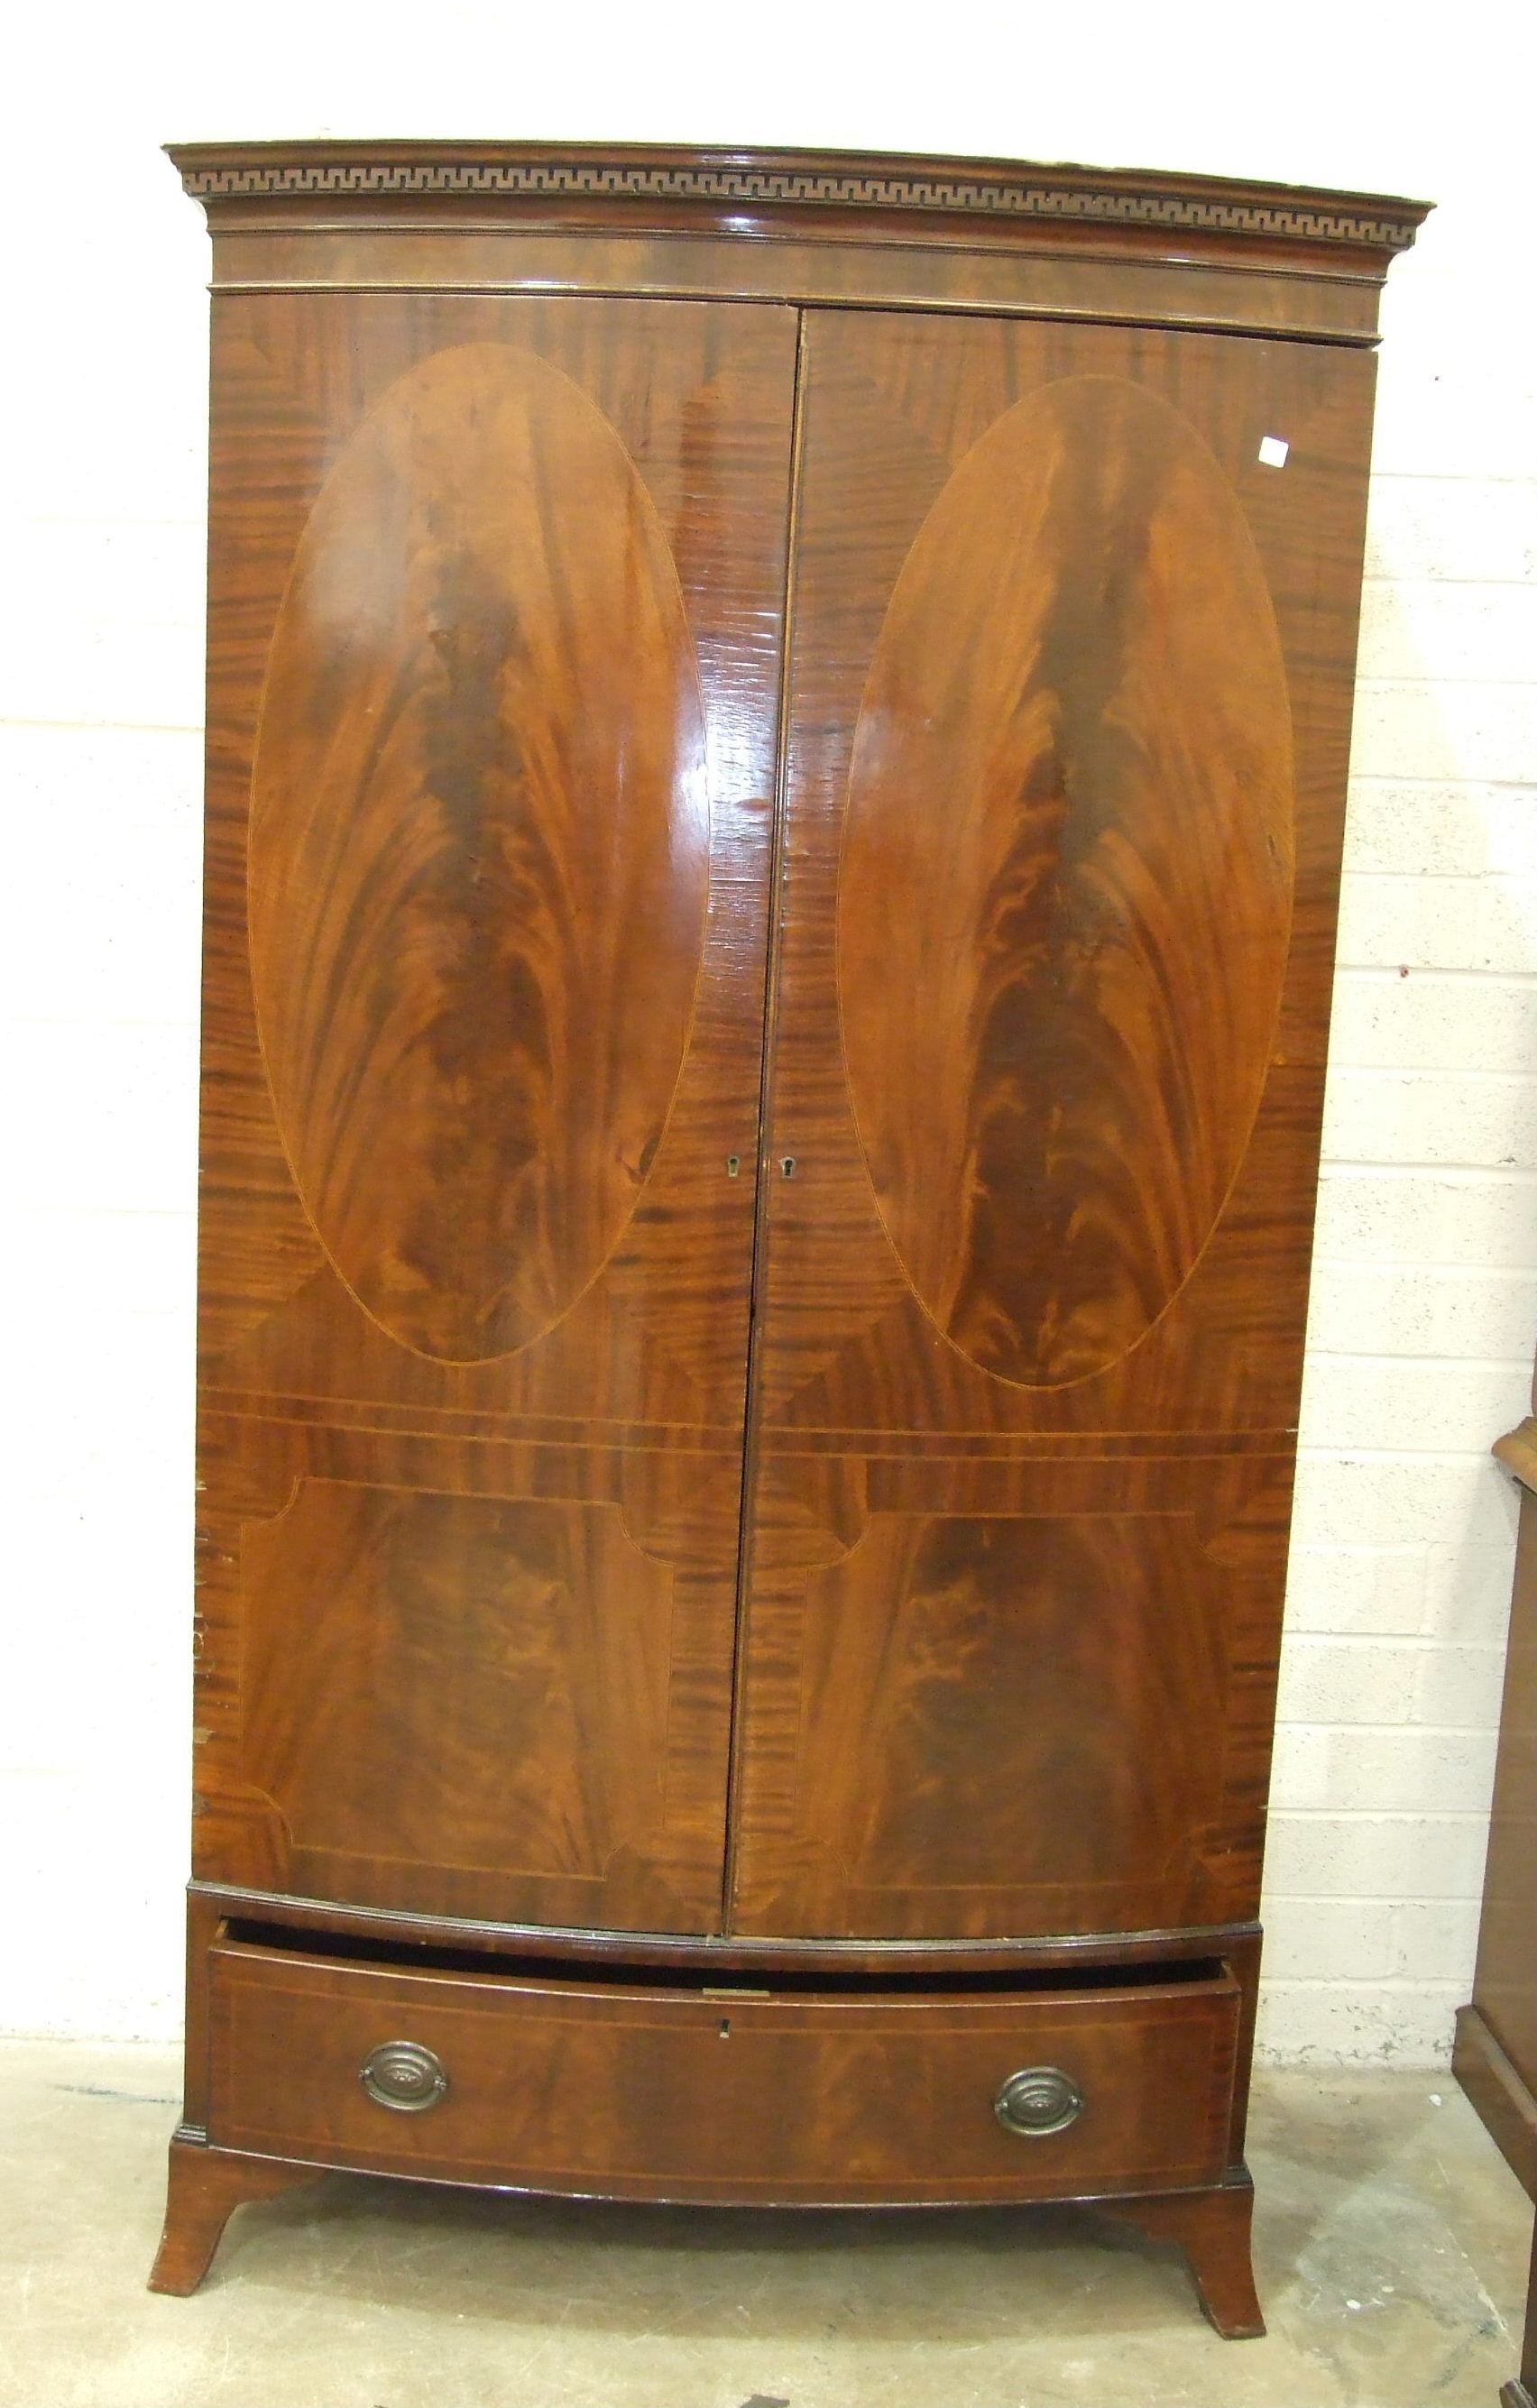 A Georgian-style mahogany bow-fronted two-door wardrobe, with dentil cornice and base drawer, - Image 2 of 2